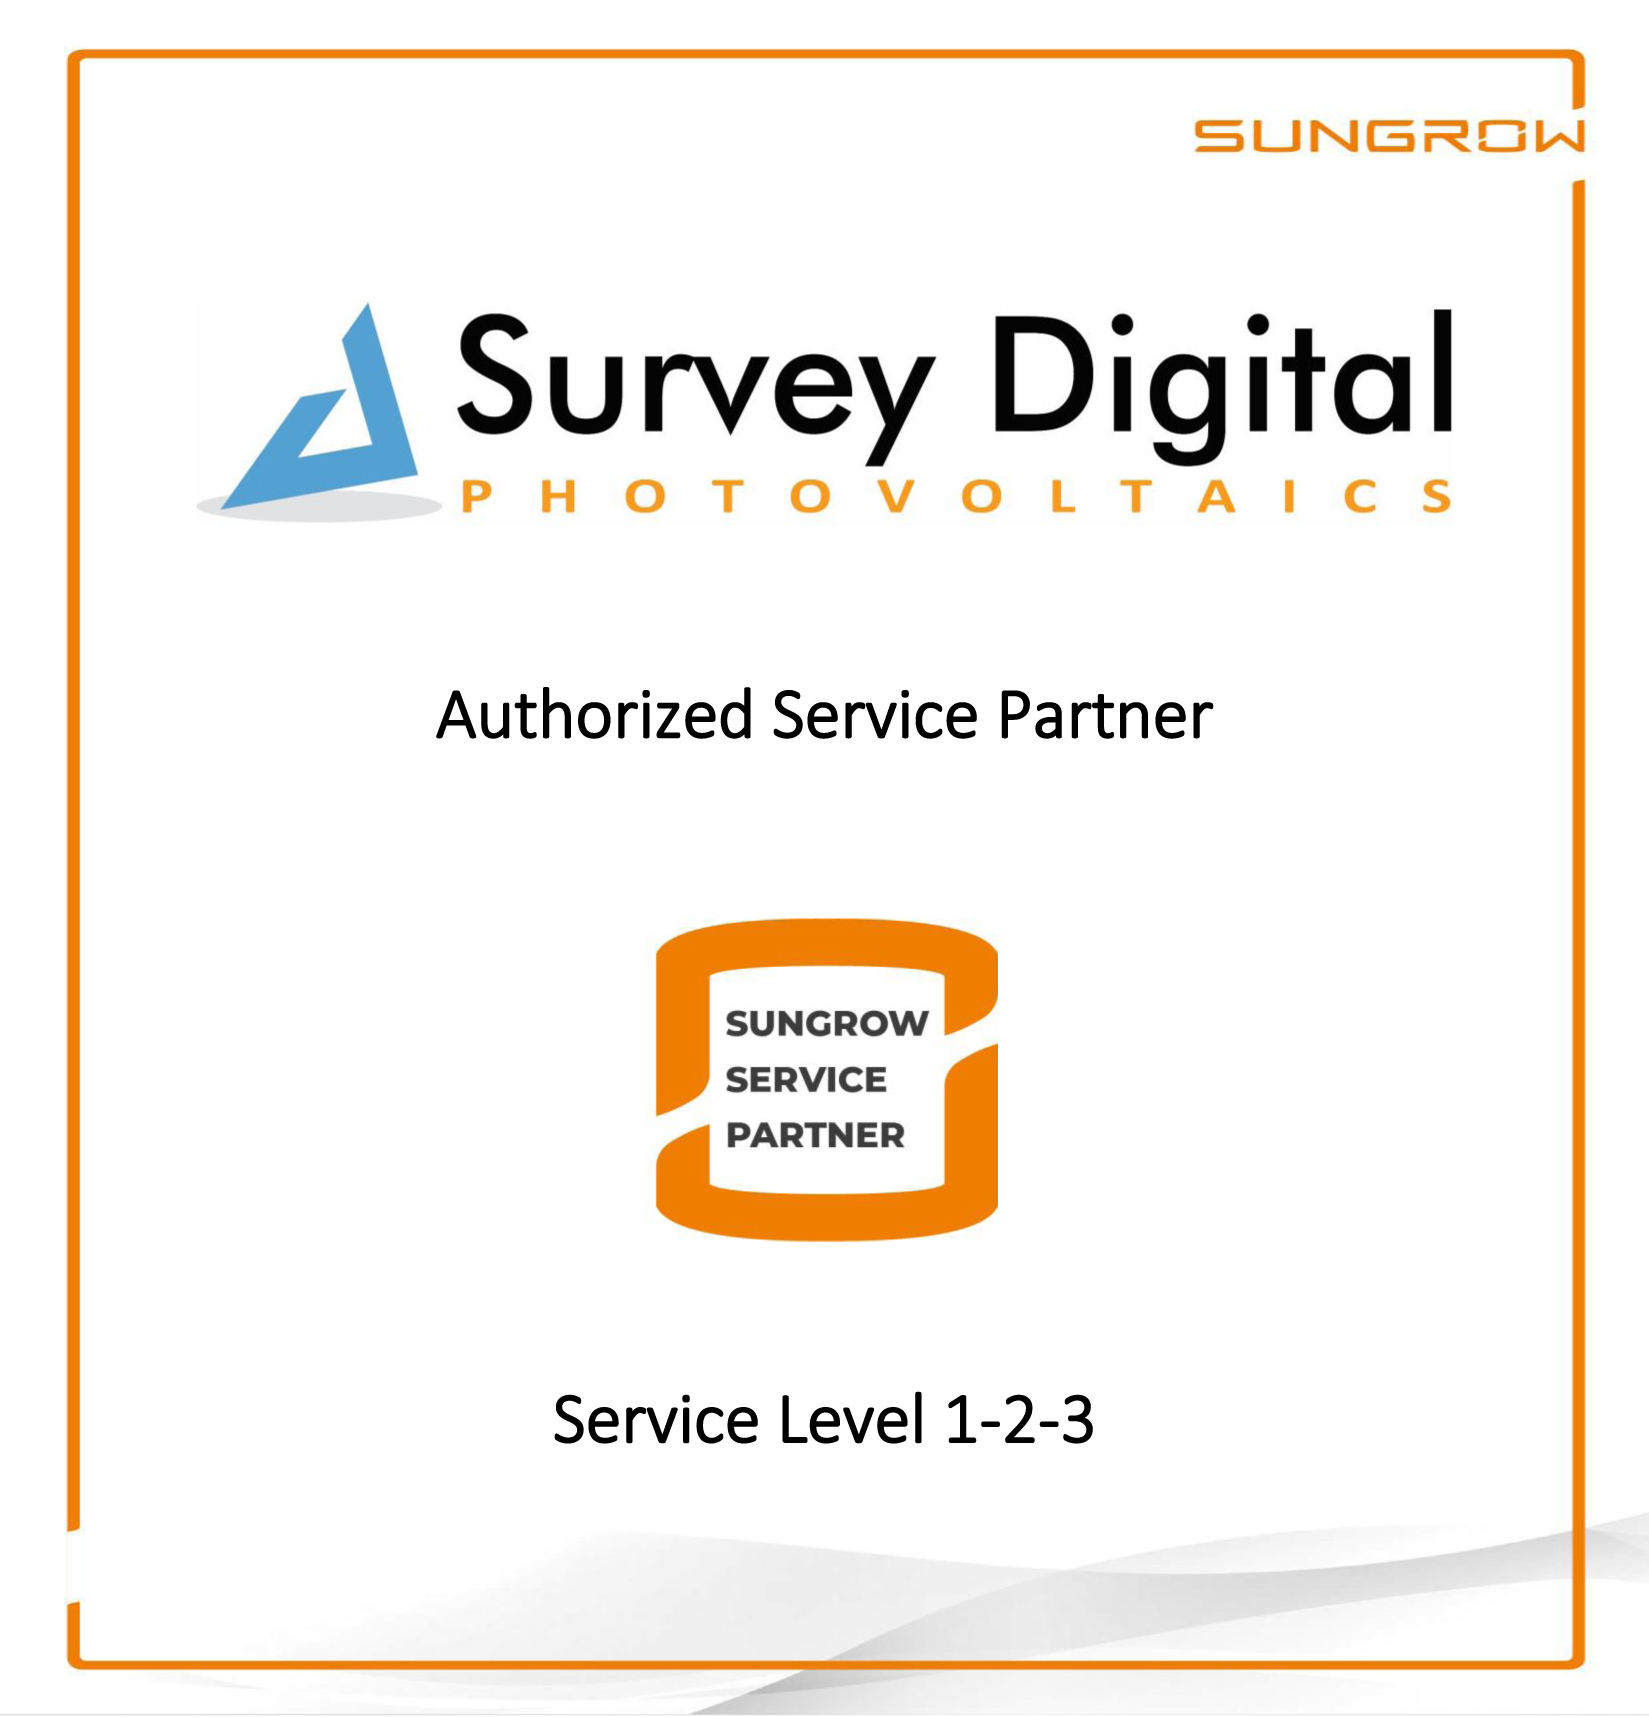 Sungrow Authorized Service Partner